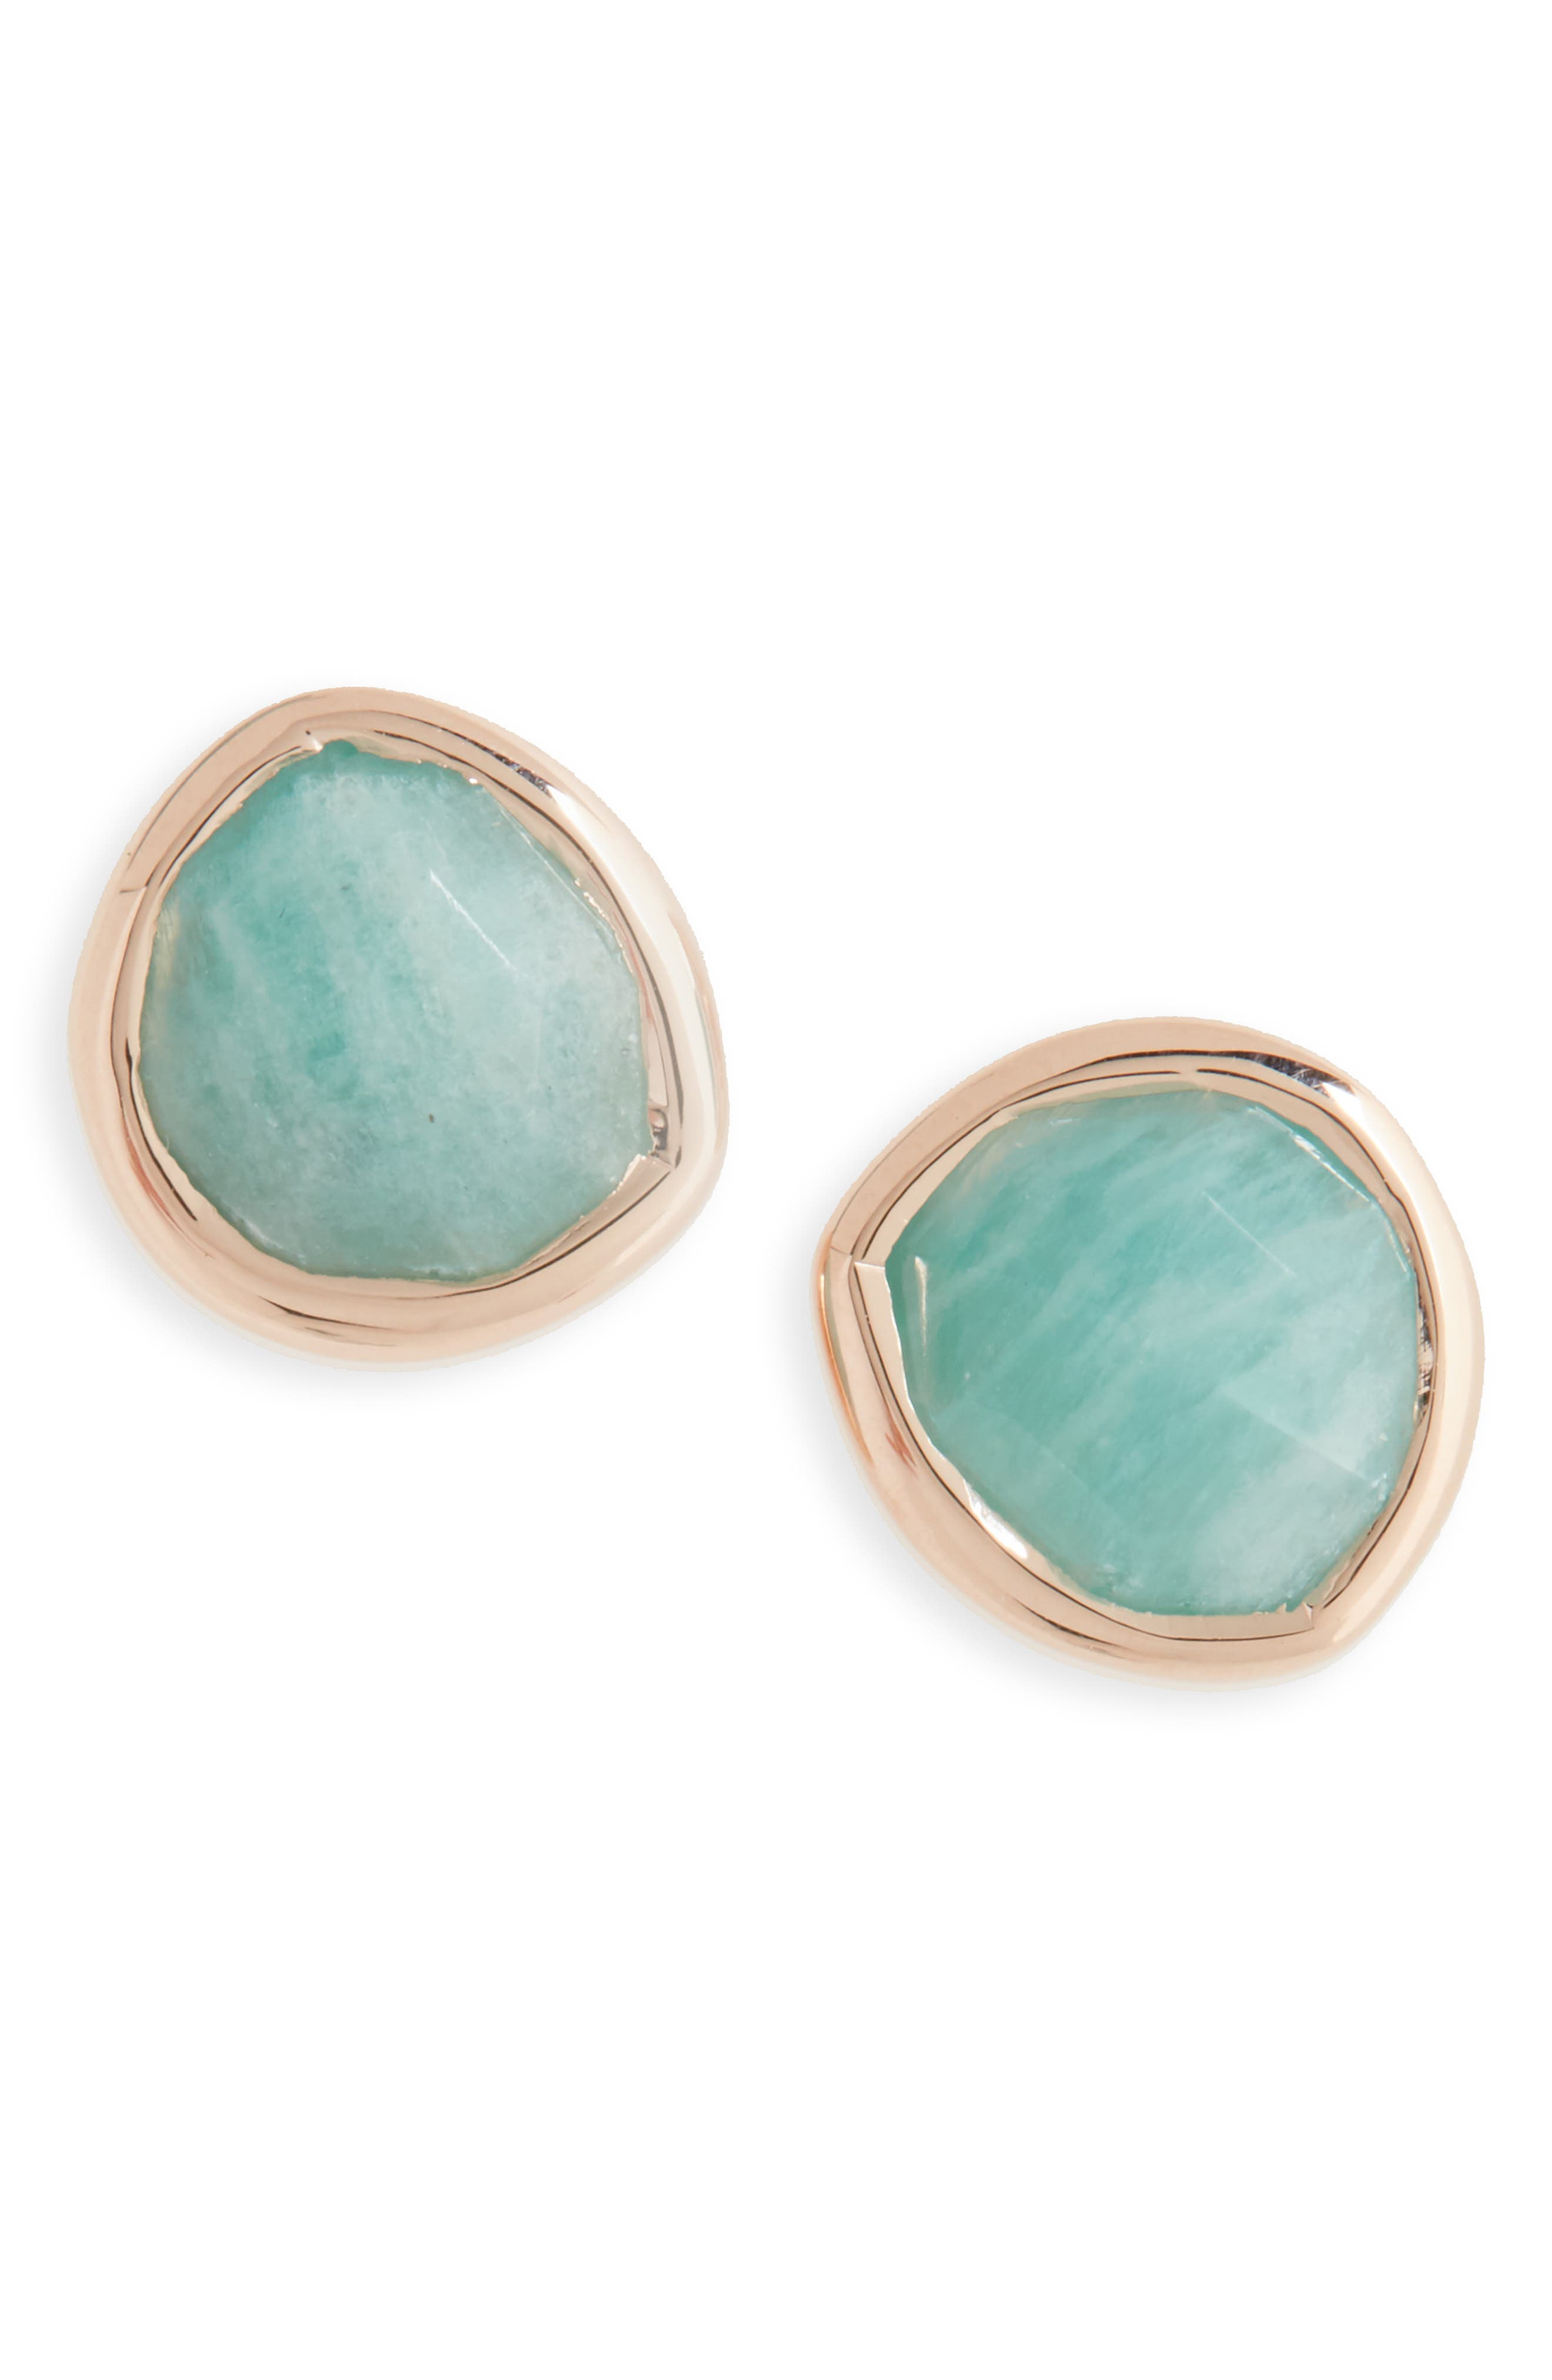 MONICA VINADER, 'Siren' Semiprecious Stone Stud Earrings, Main thumbnail 1, color, AMAZONITE/ ROSE GOLD